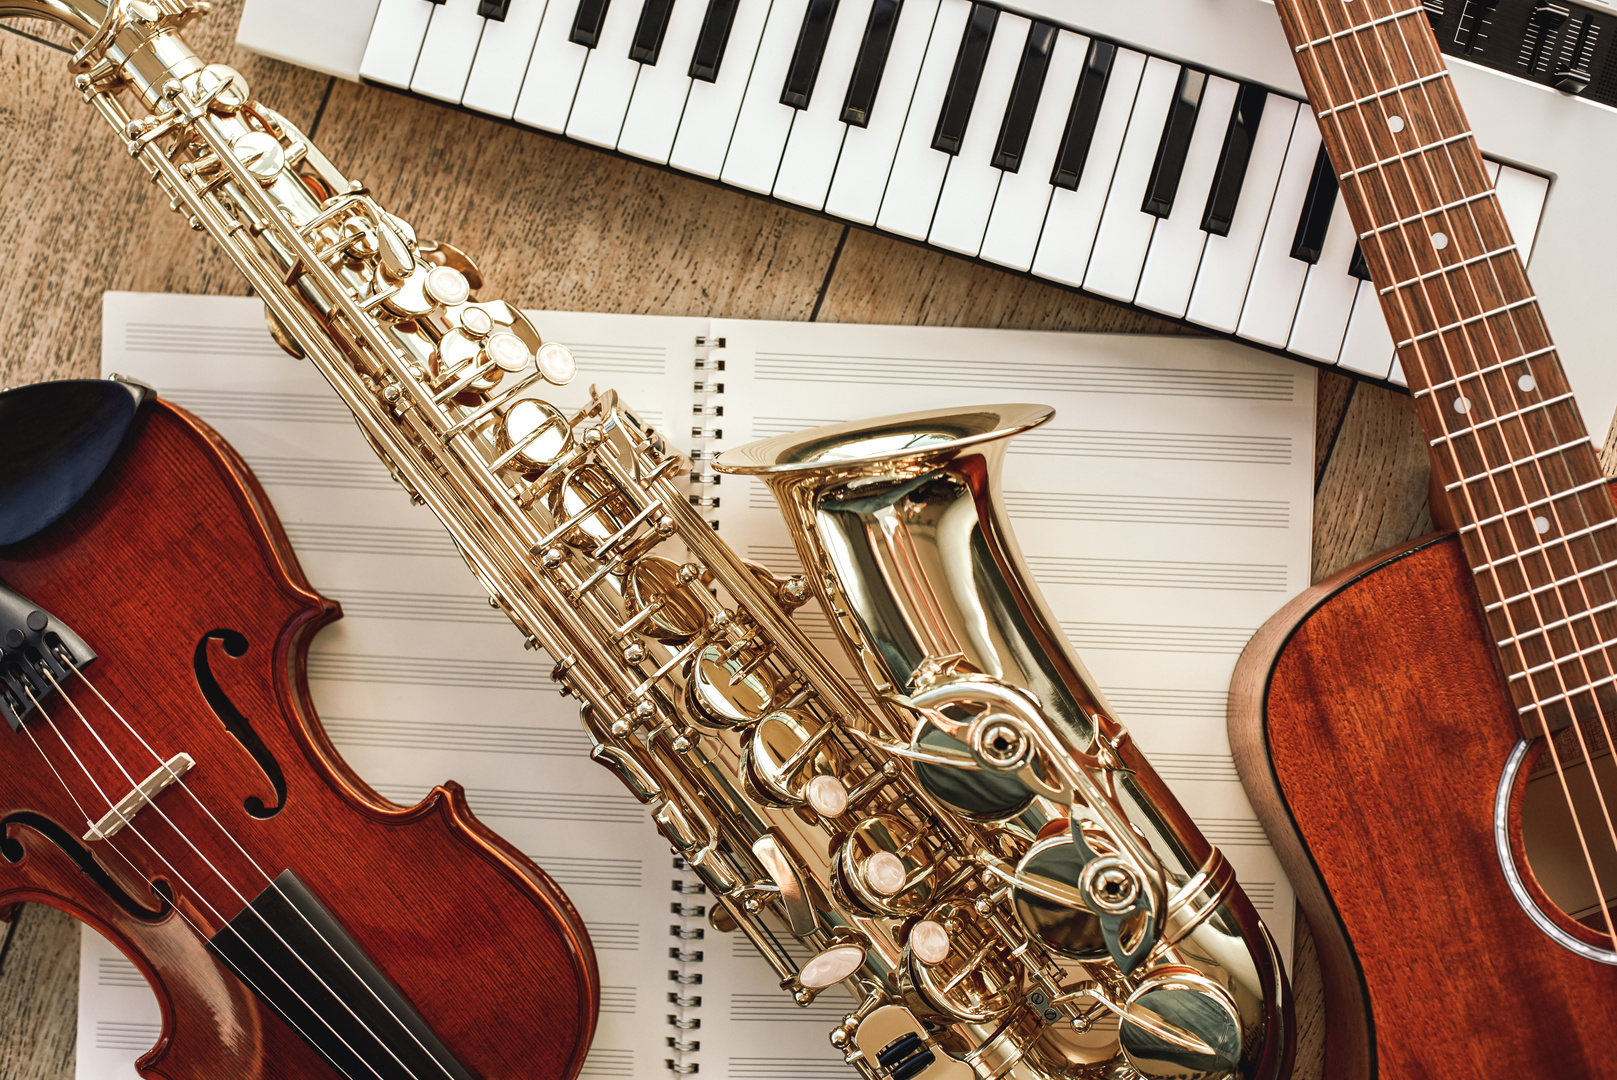 Power of music. Top view of musical instruments set: synthesizer, guitar, saxophone and violin lying on the sheets for music notes over wooden floor. Musical instruments. Music equipment